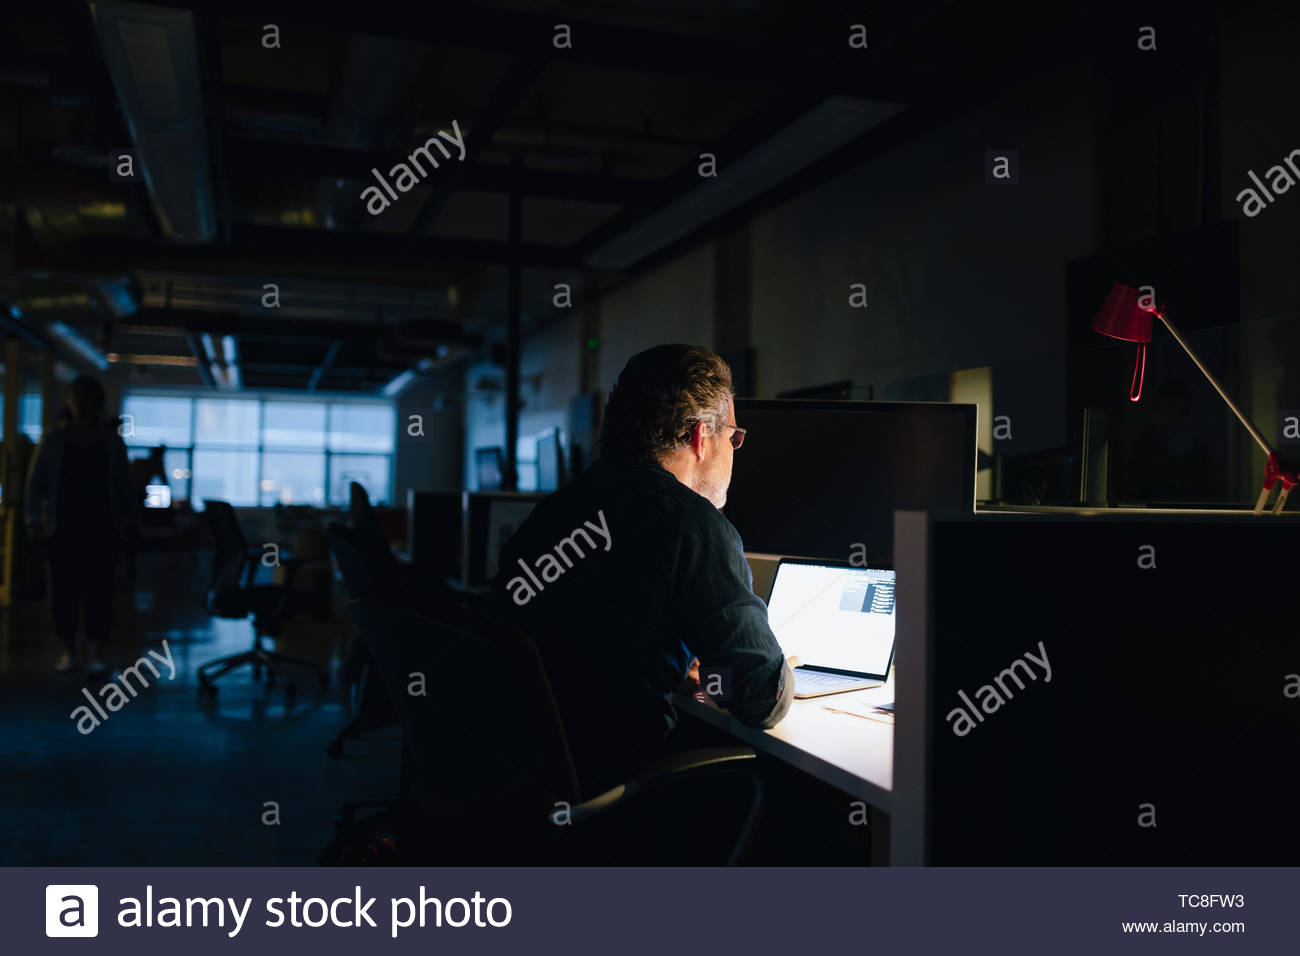 Businessman working late at laptop in dark office - Stock Image